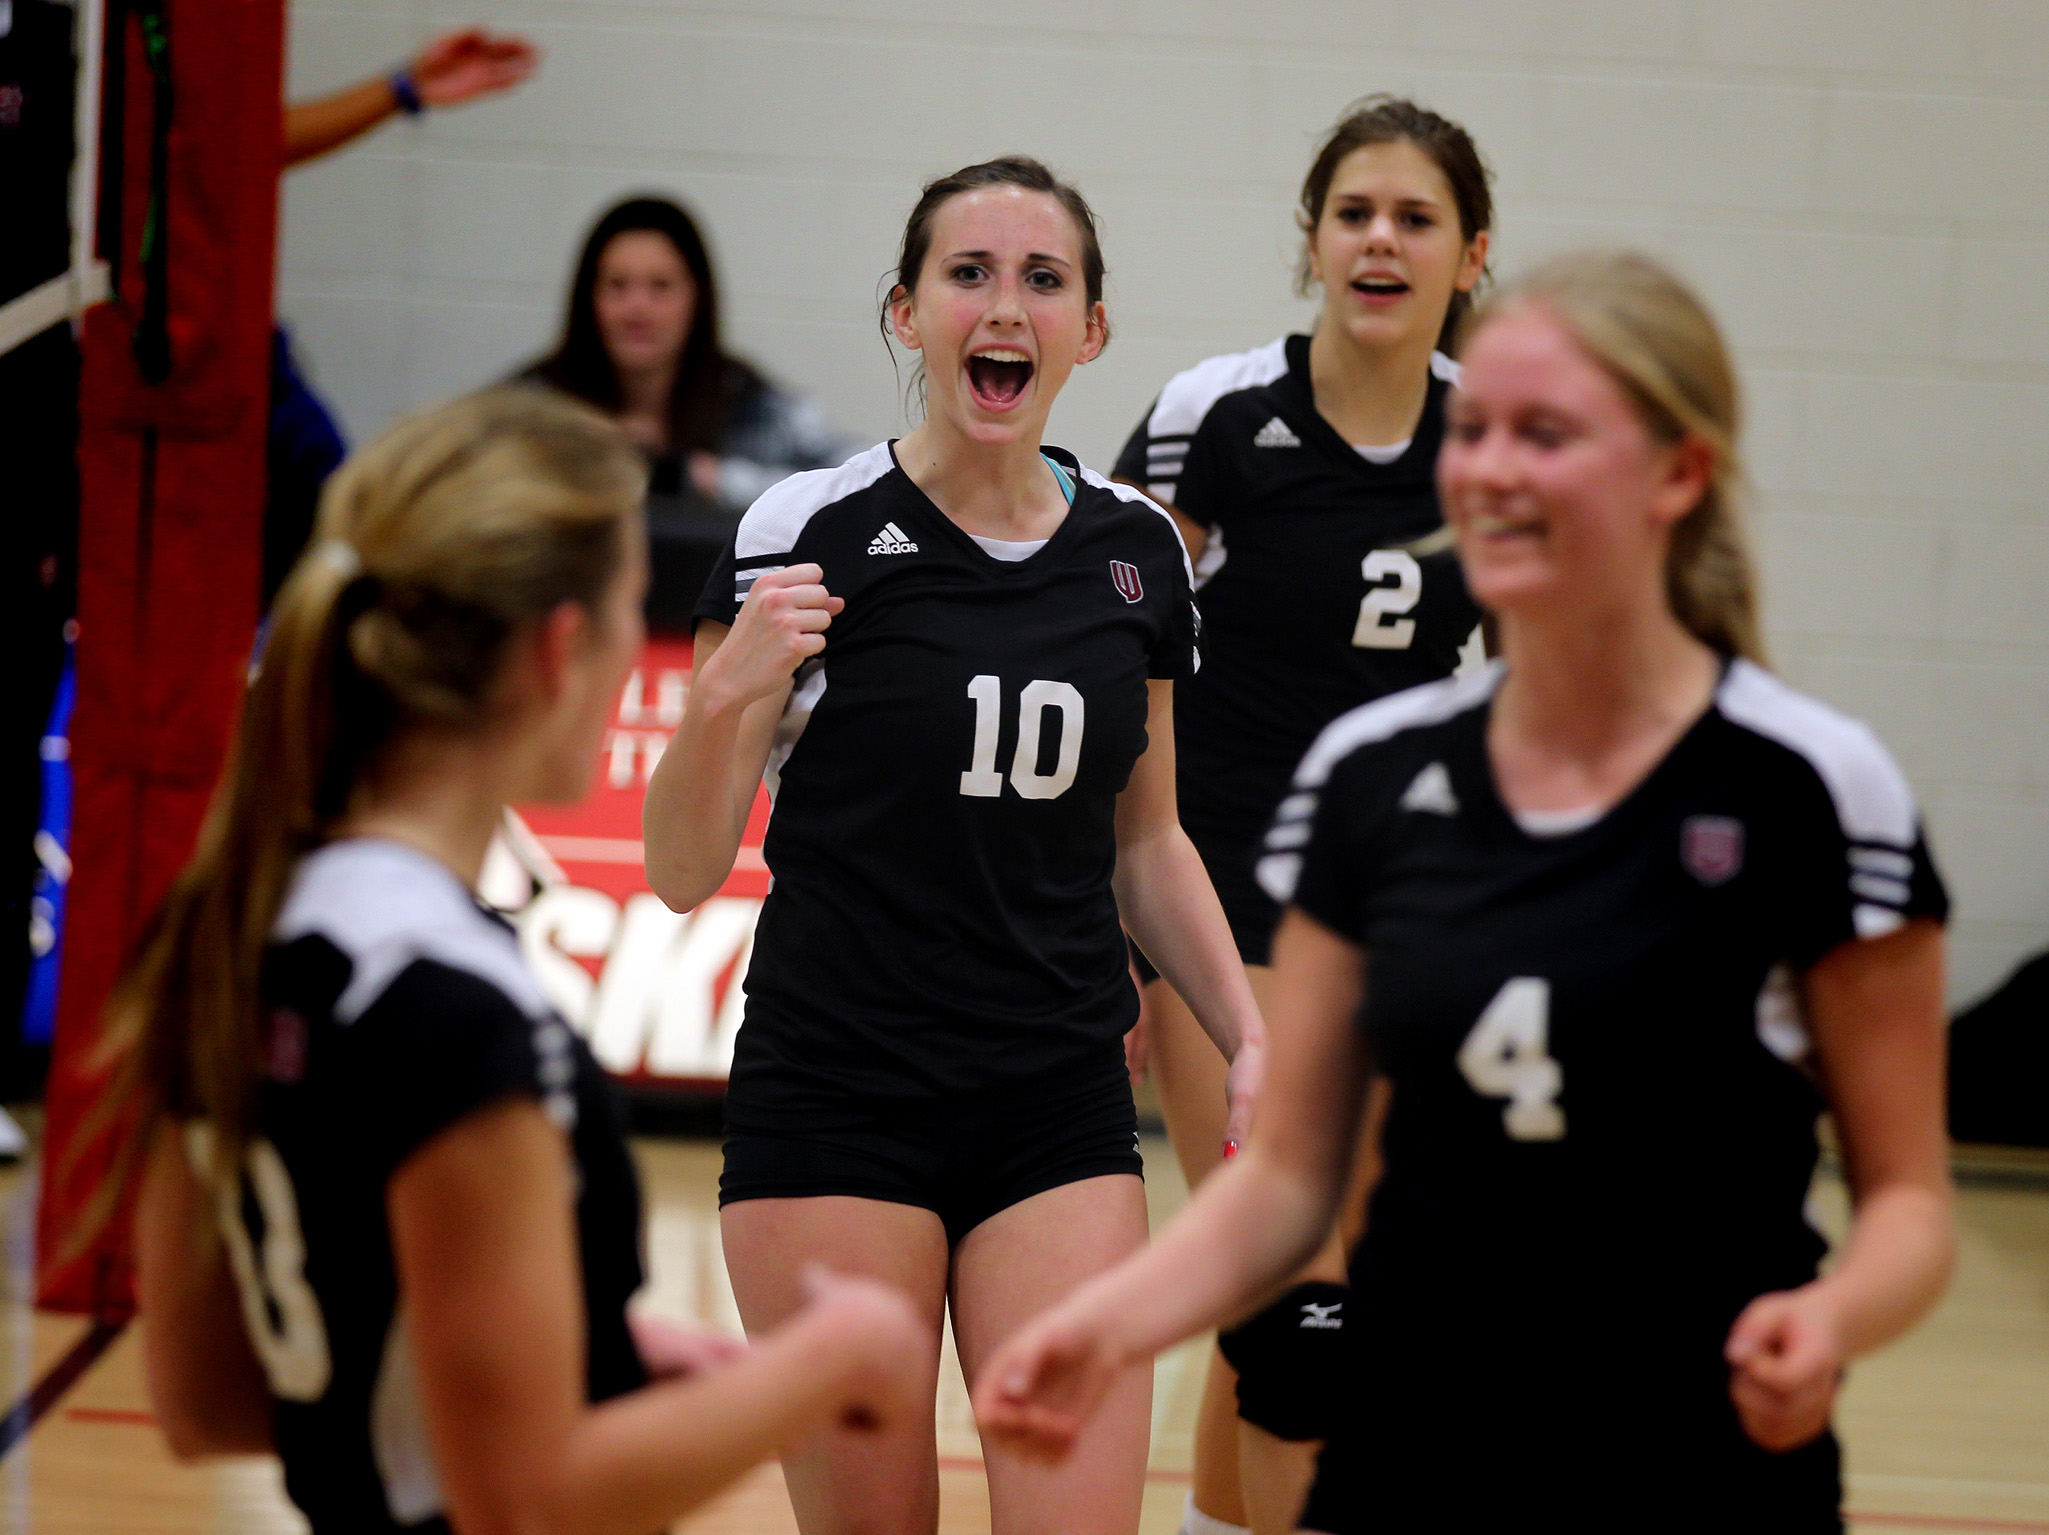 Katie Hamm (10) celebrates a point.